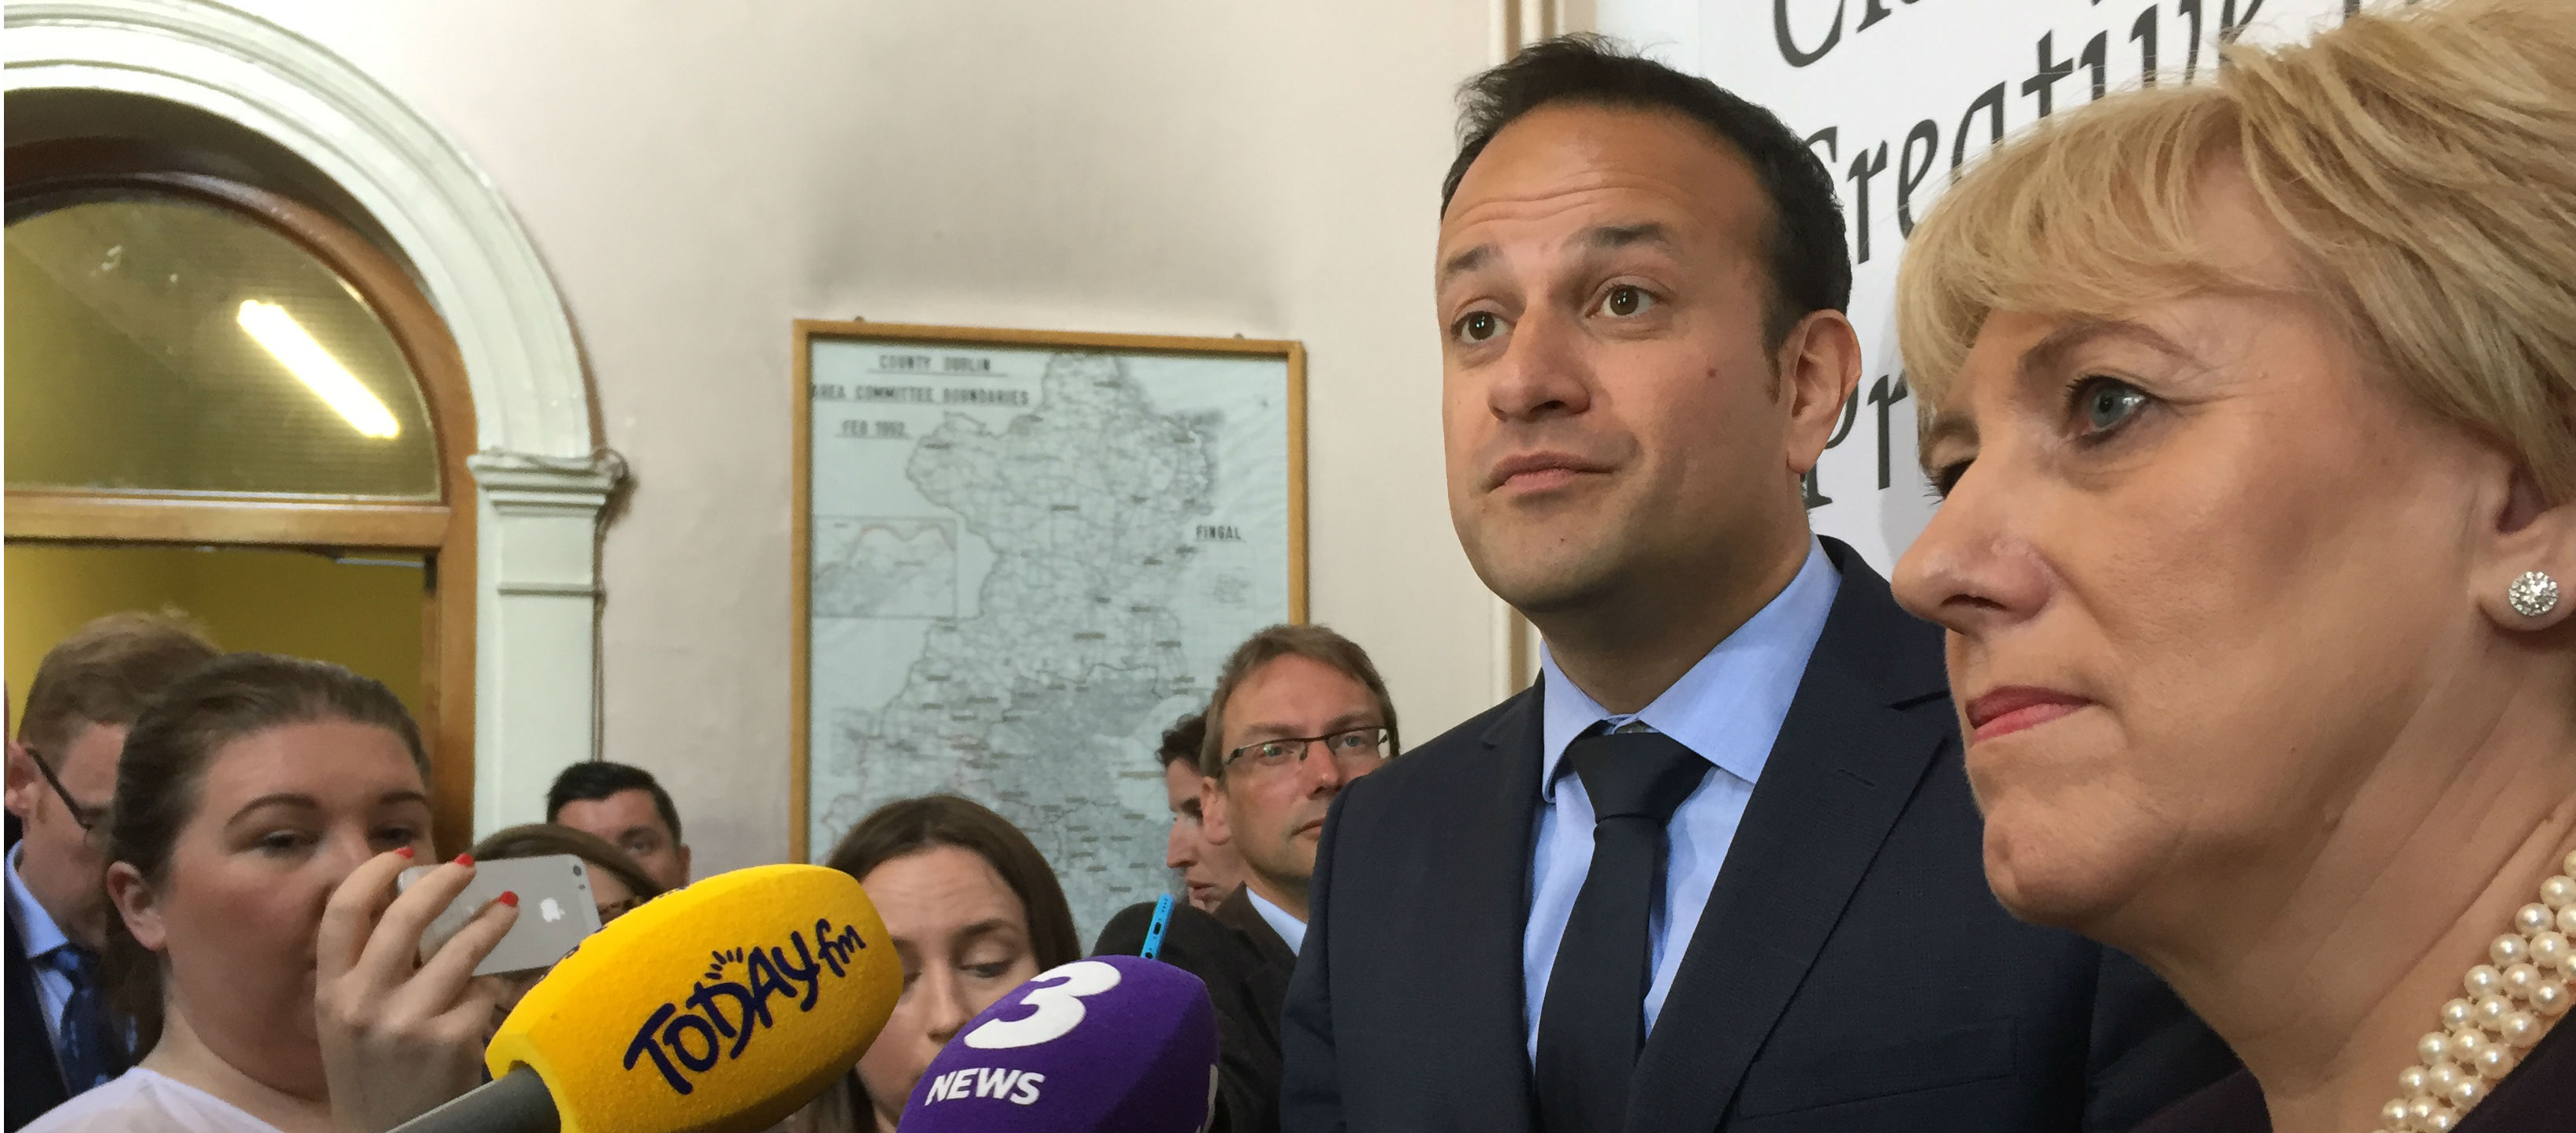 Leo Varadkar Won't Reveal Cabinet Yet